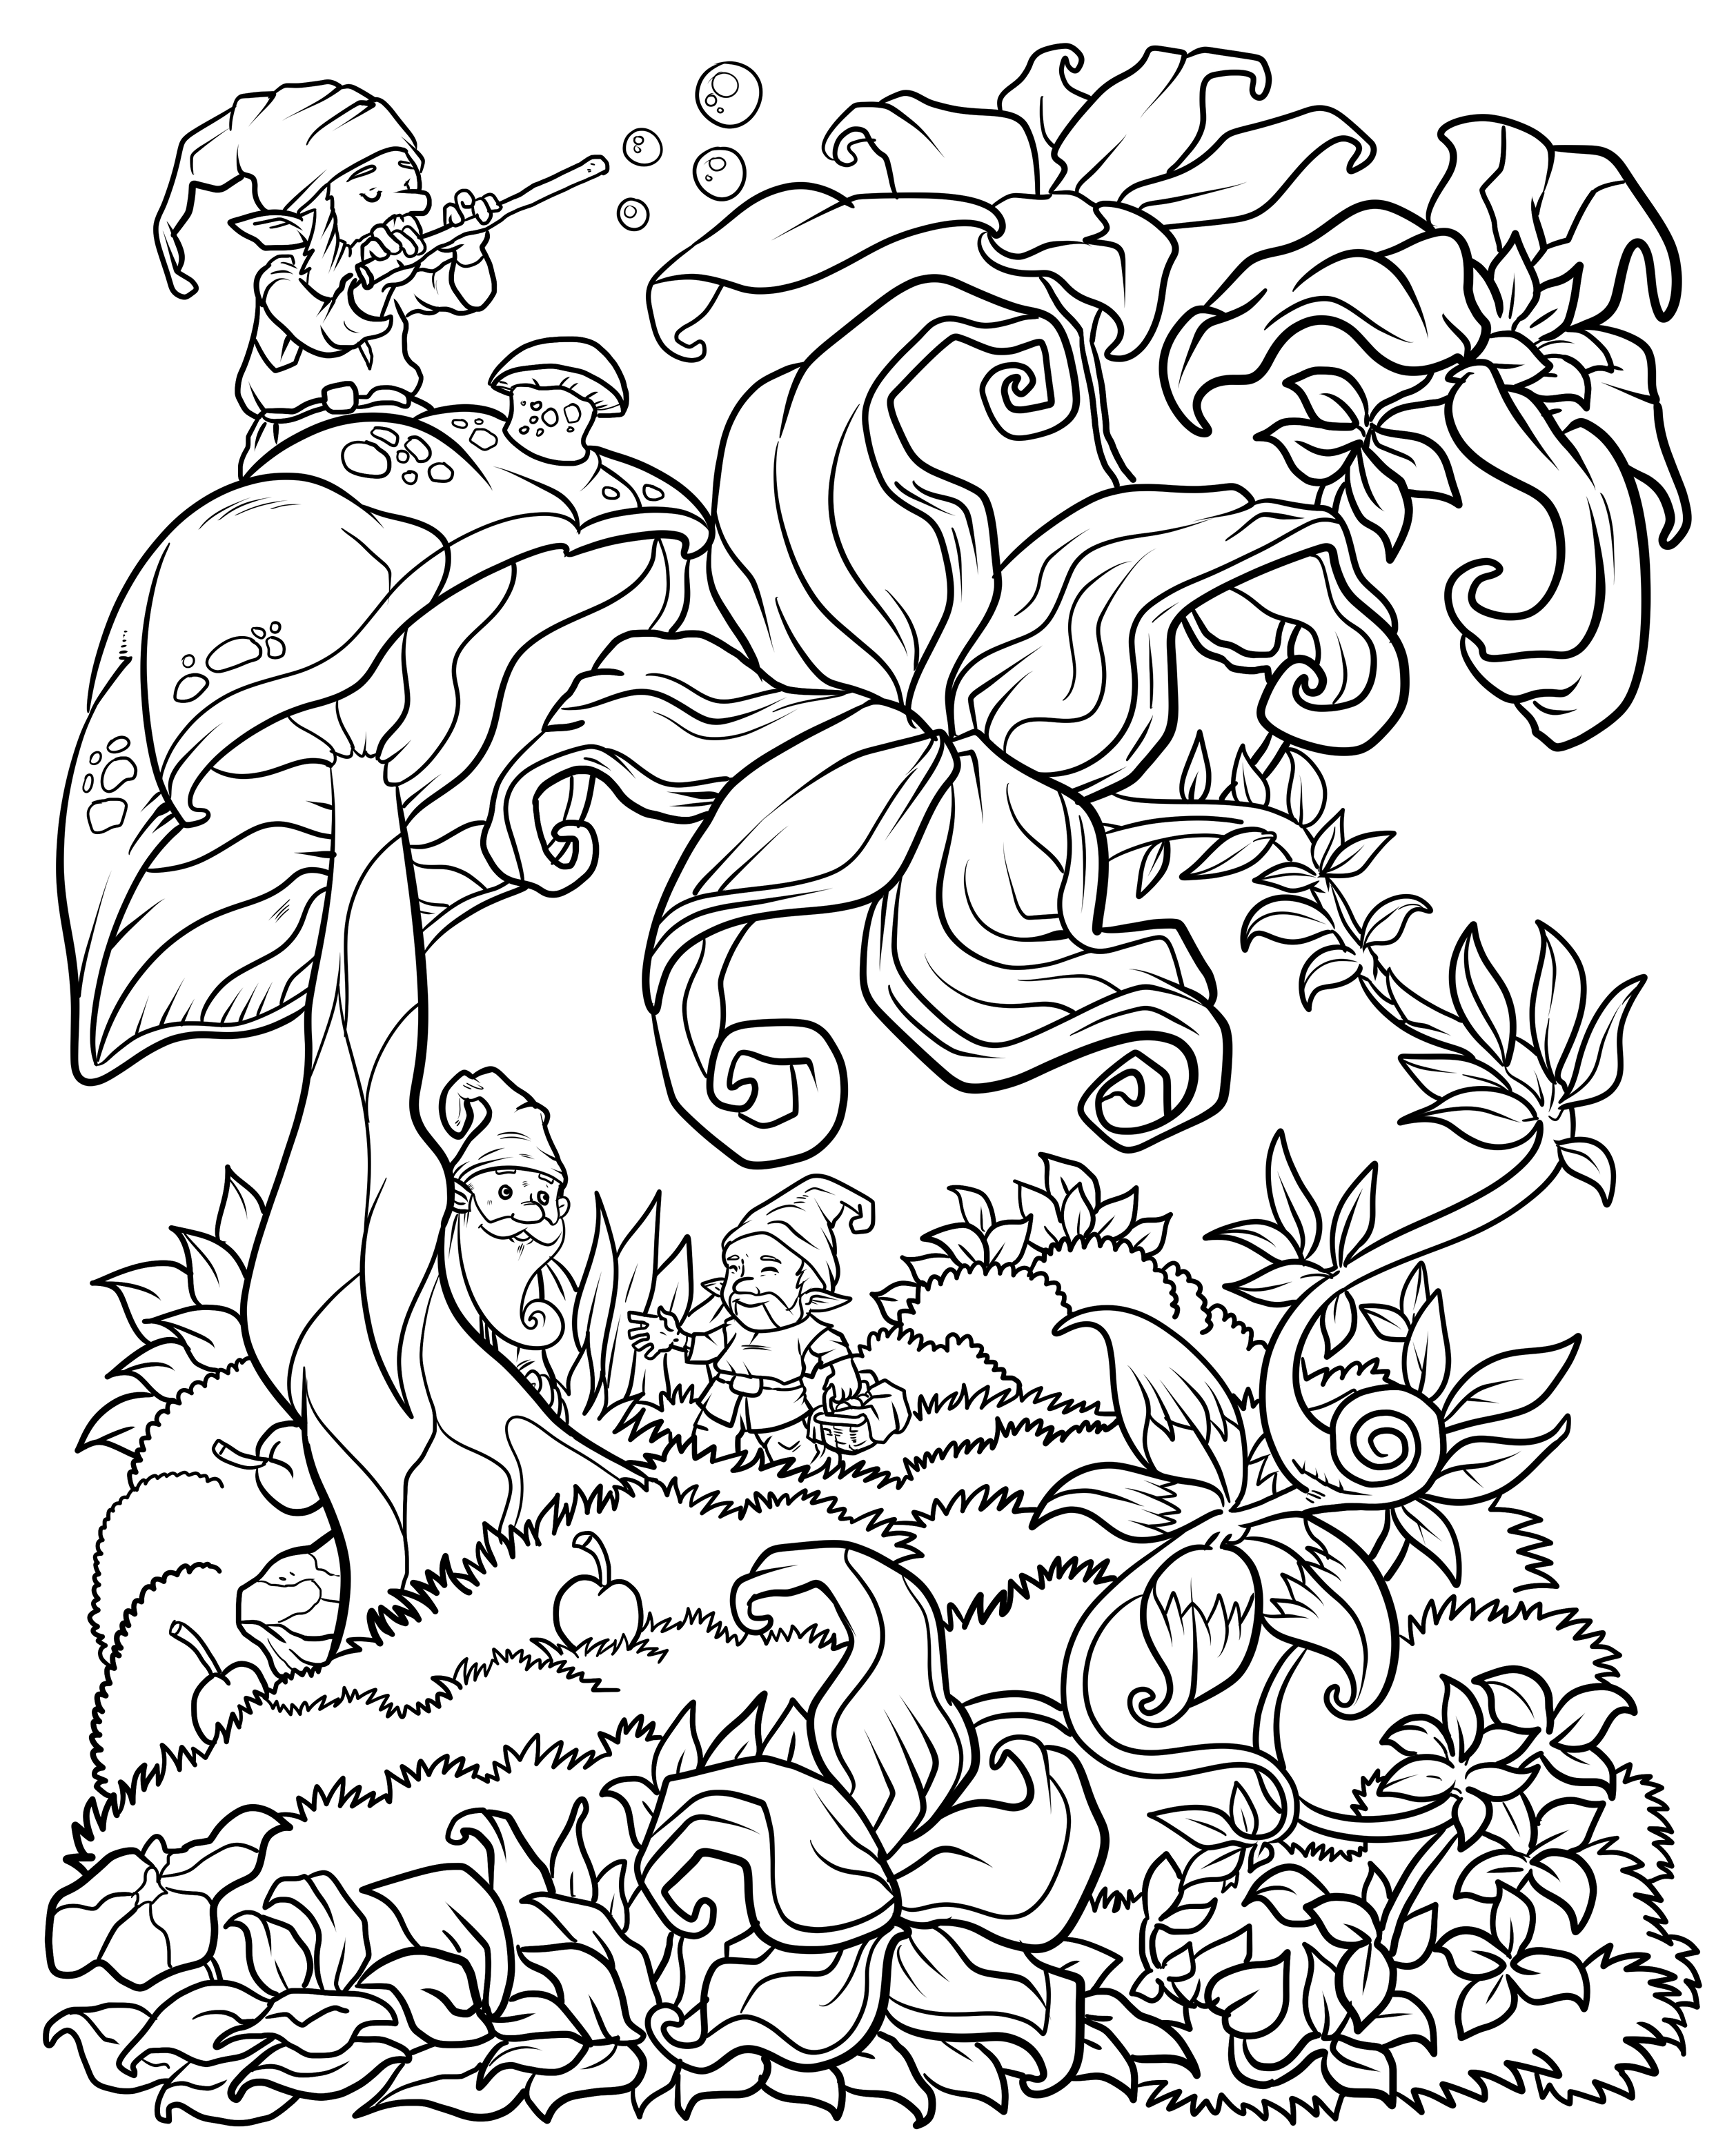 coloring books for adults online 10 free printable holiday adult coloring pages adults for coloring books online